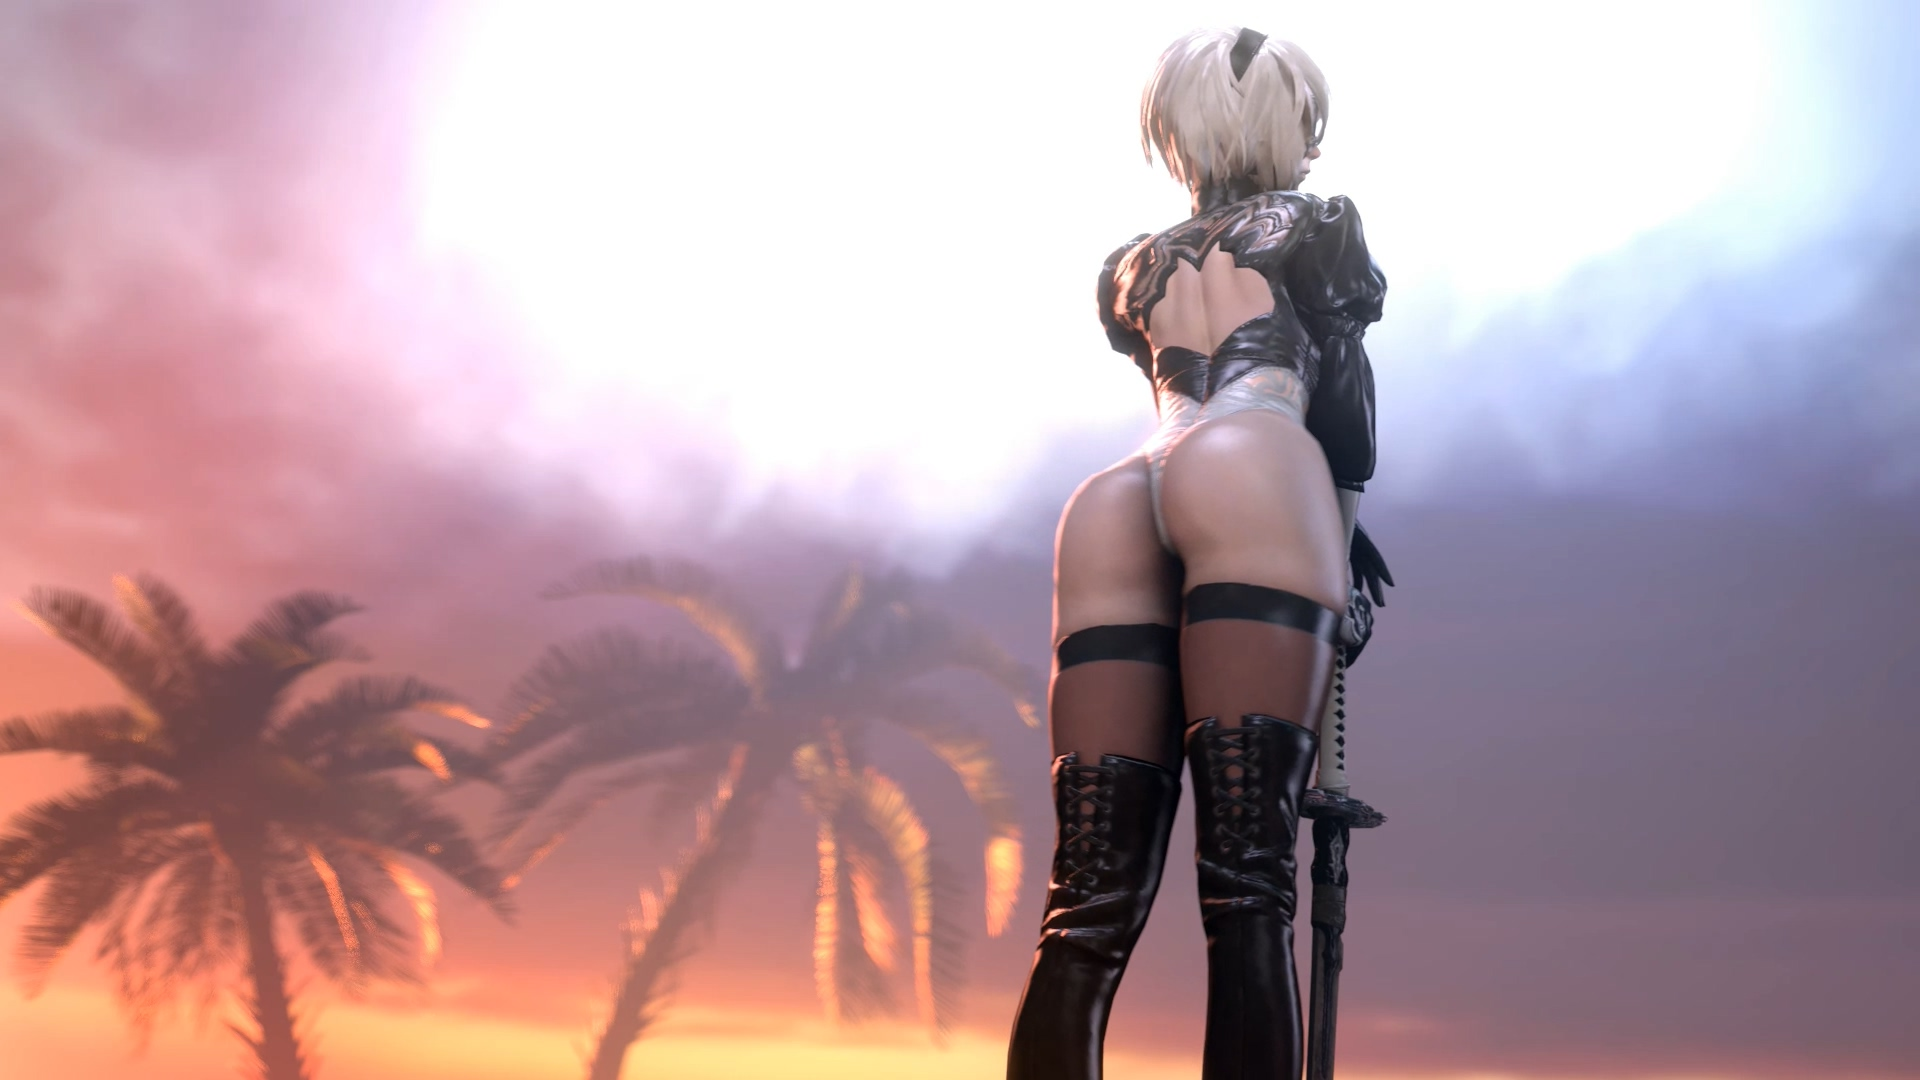 NieR: Automata-2B Showing Off her booty